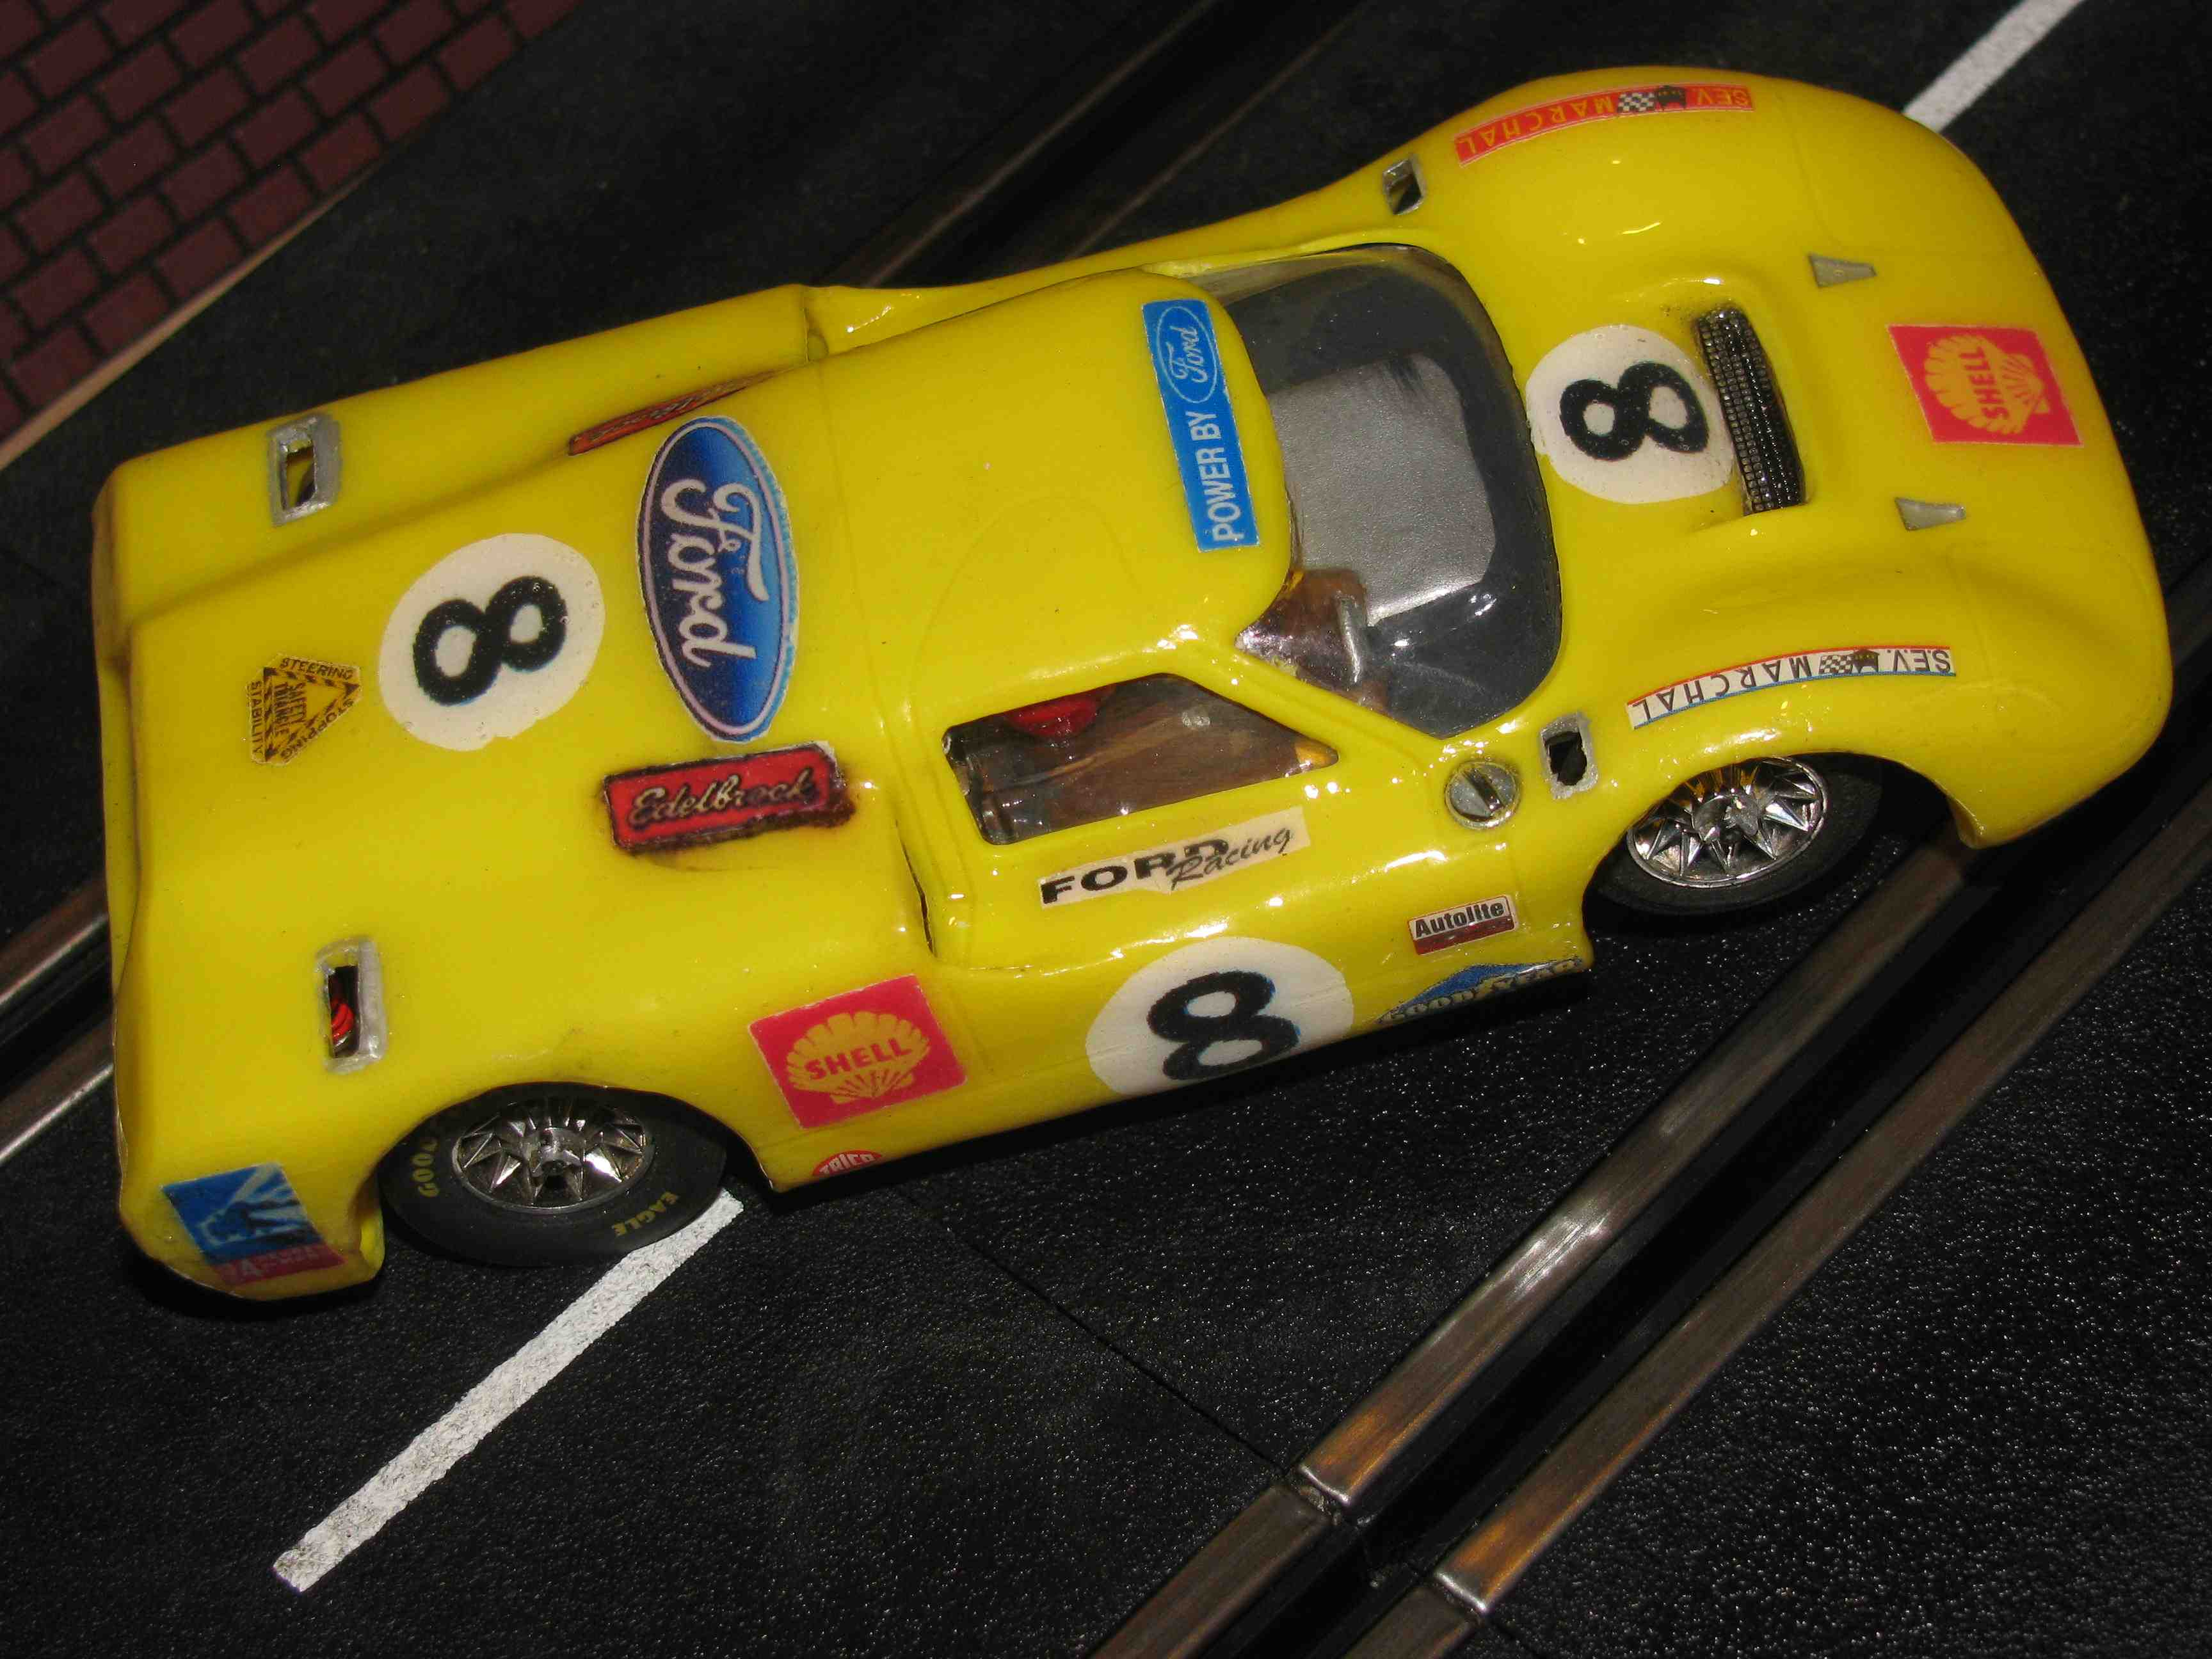 *** SOLD *** FORD J-GT Slot Car, Vintage Yellow, 1/32 Scale